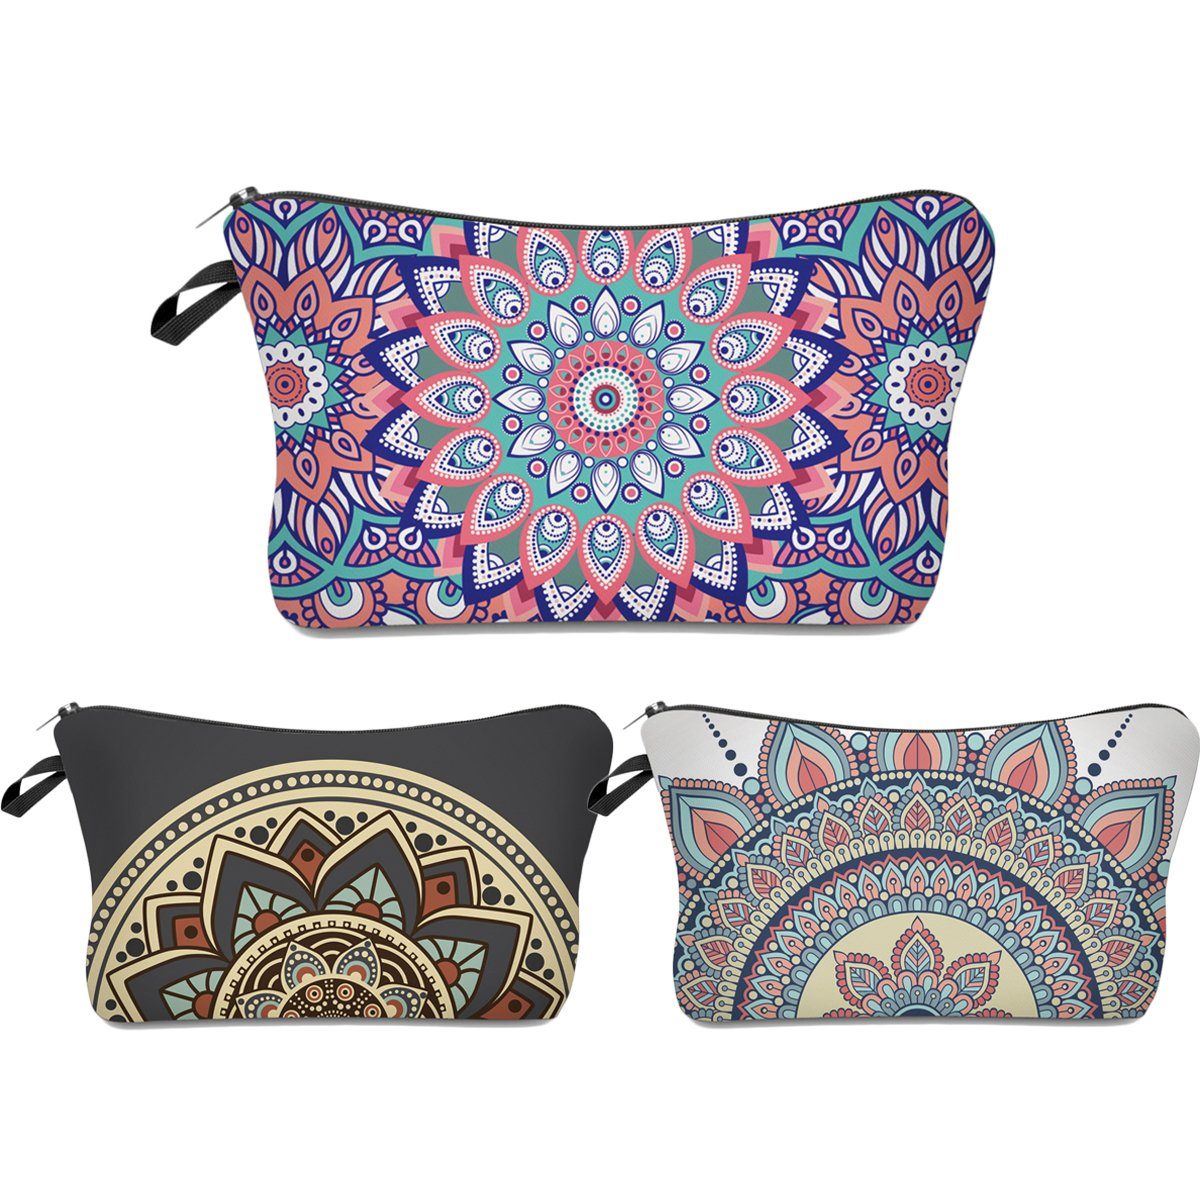 Roomy Cosmetic Bag, 3 piece Set Deanfun Waterproof Travel Toiletry Pouch Makeup with Zipper (Mandala Flowers) 510125096450965